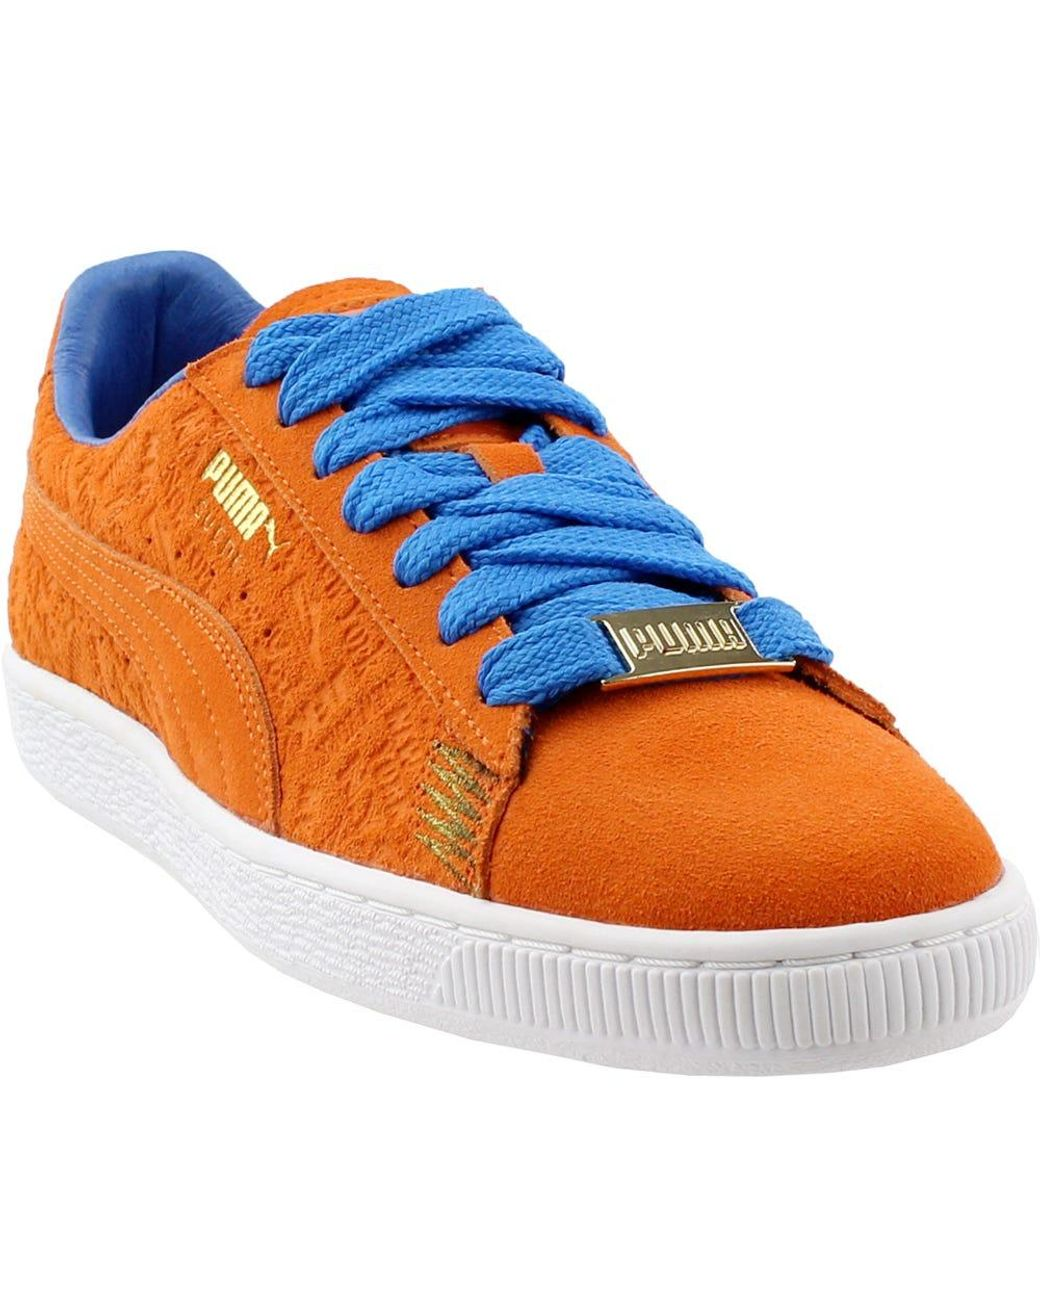 sports shoes 07013 96b2c Men's Orange Suede Classic Nyc